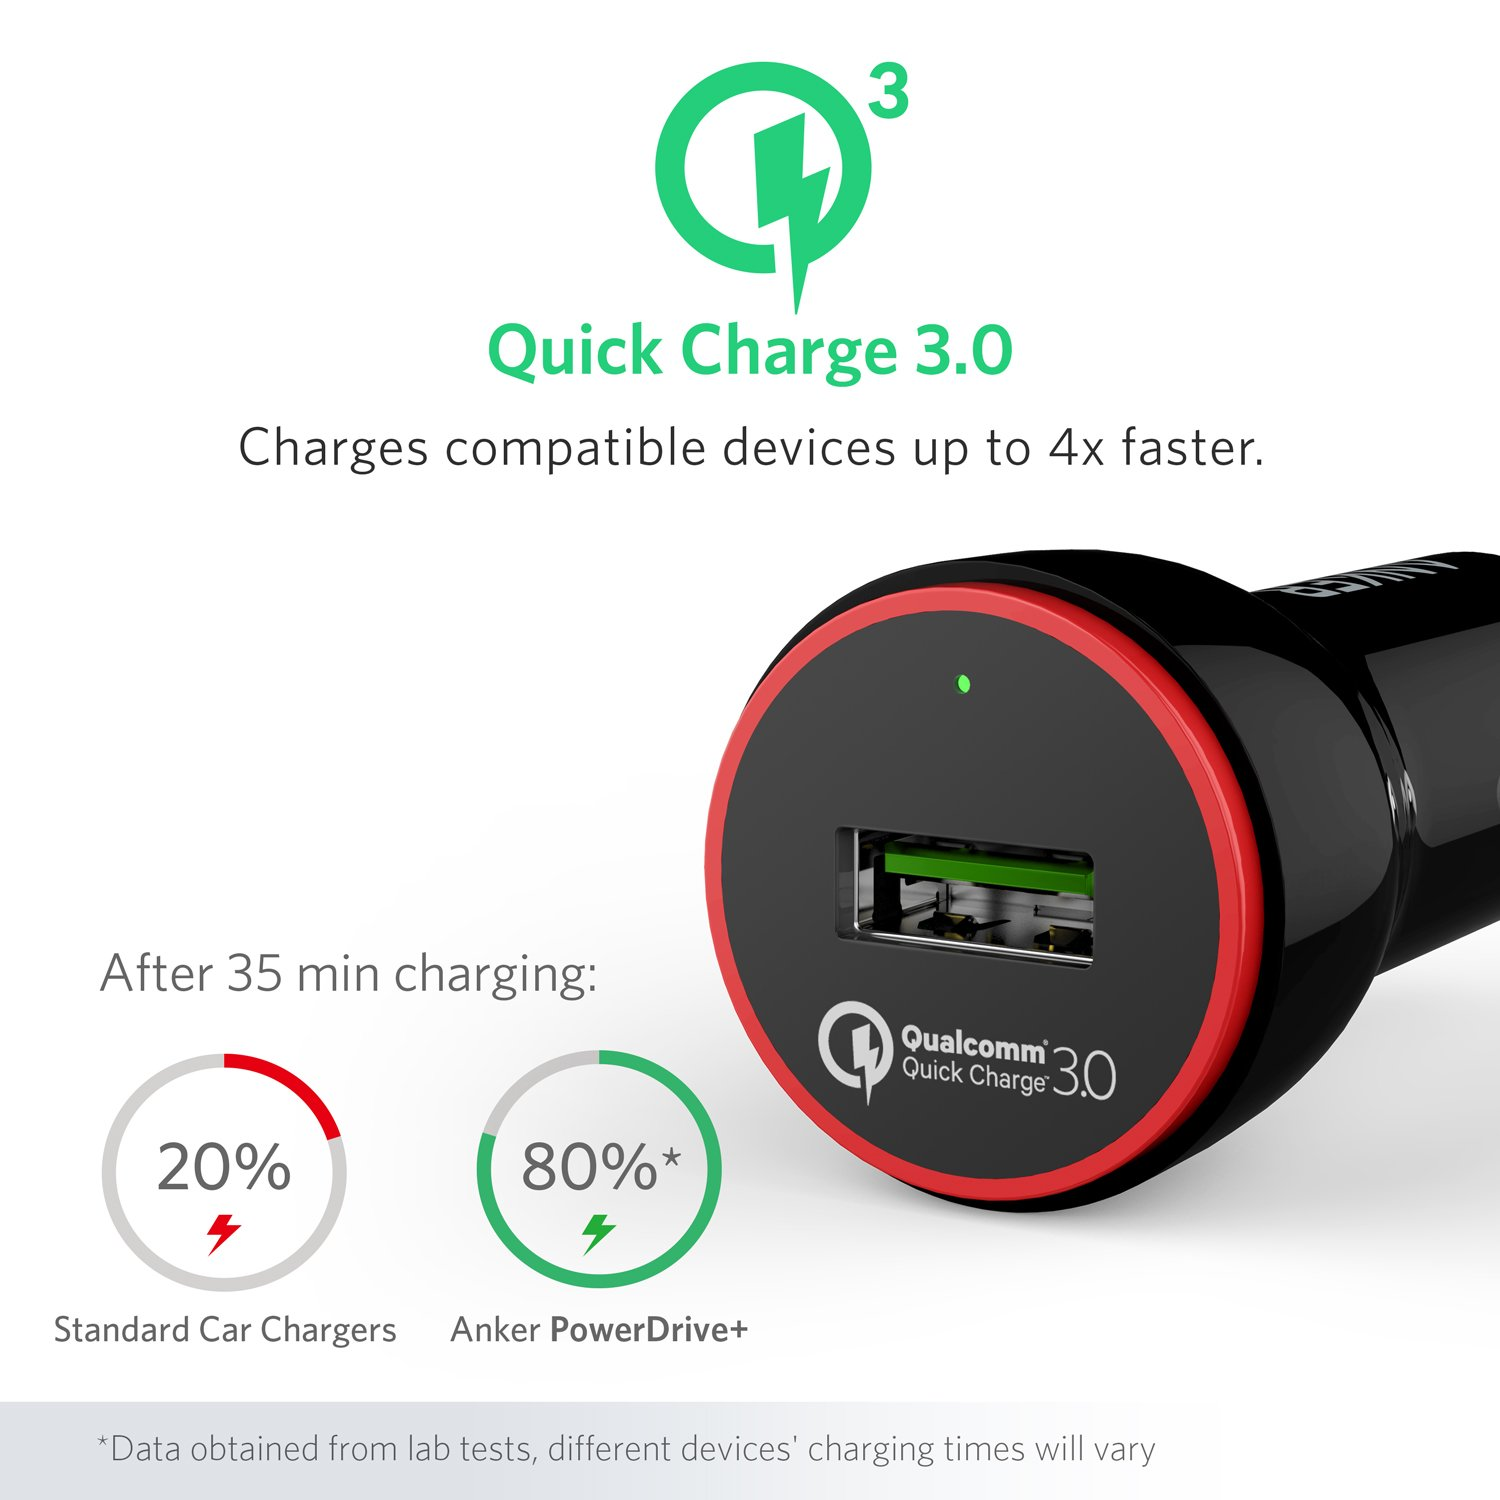 Anker Quick Charge 3.0 24W USB Car Charger, PowerDrive+ 1 for Galaxy S7/S6/Edge/Plus, Note 5/4 and PowerIQ for iPhone X/8/7/6s/Plus, iPad Pro/Air 2/mini, LG, Nexus, HTC and More by Anker (Image #3)